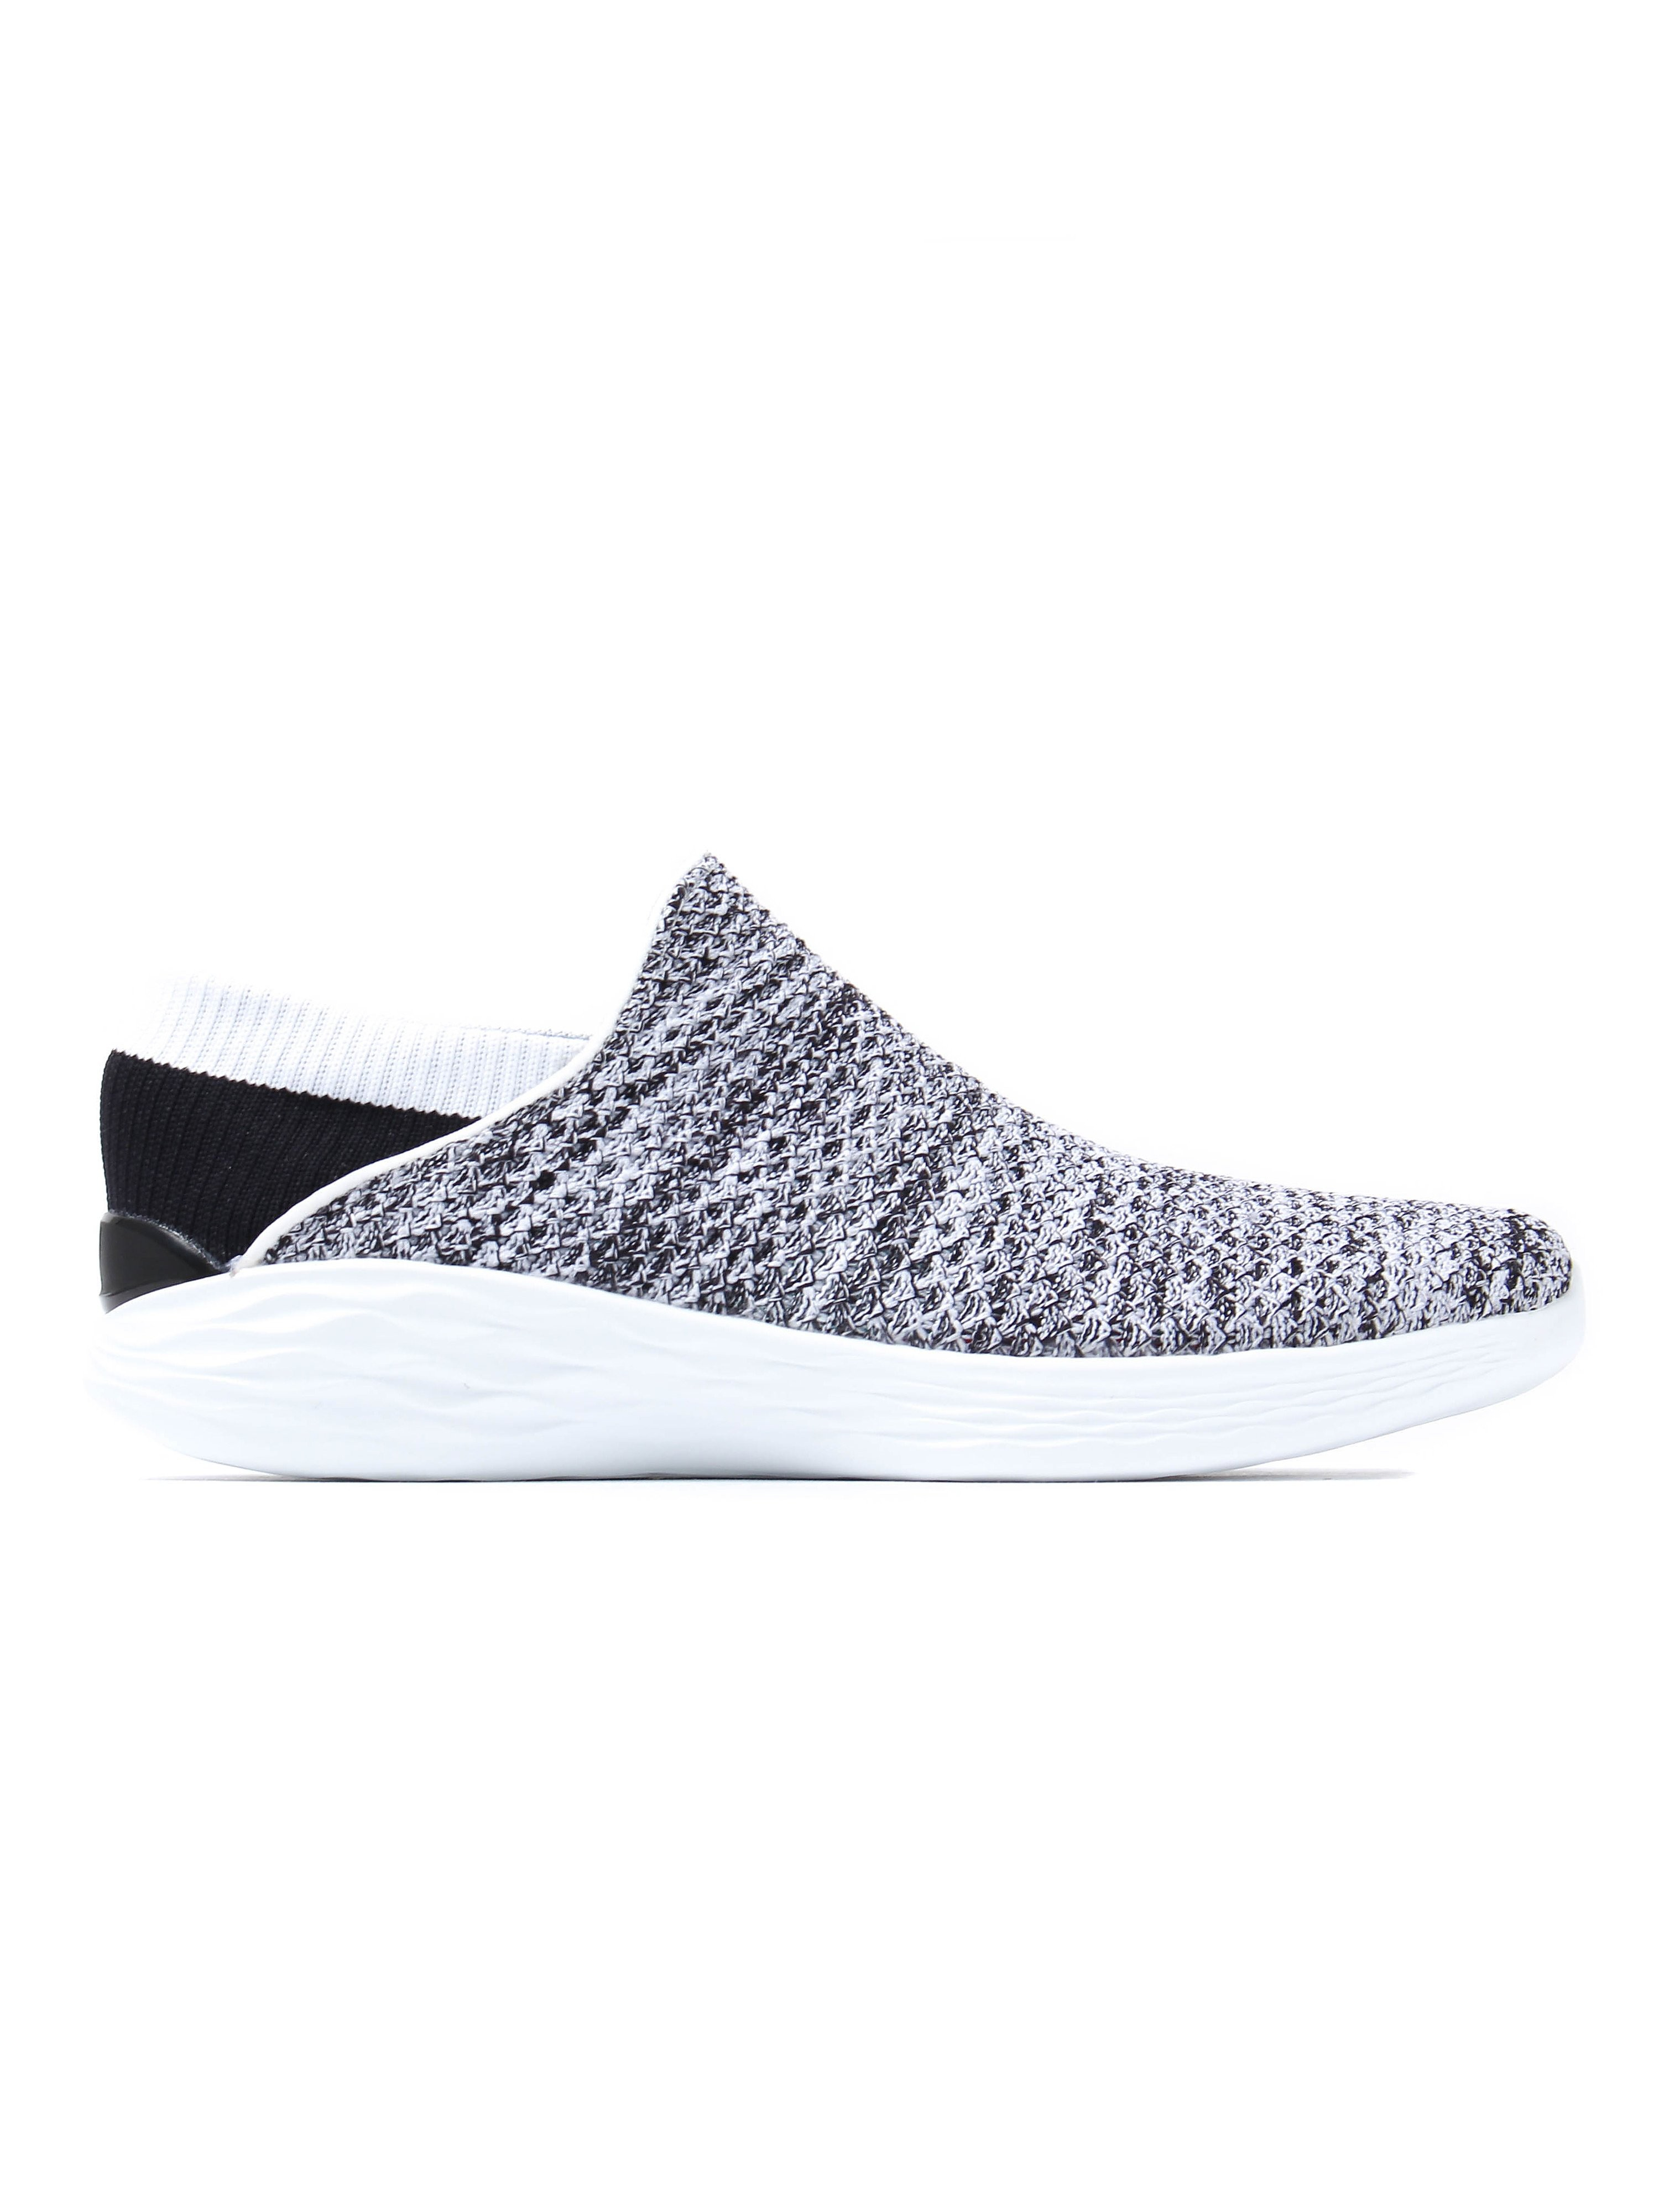 Skechers Women's You Trainers - White & Black